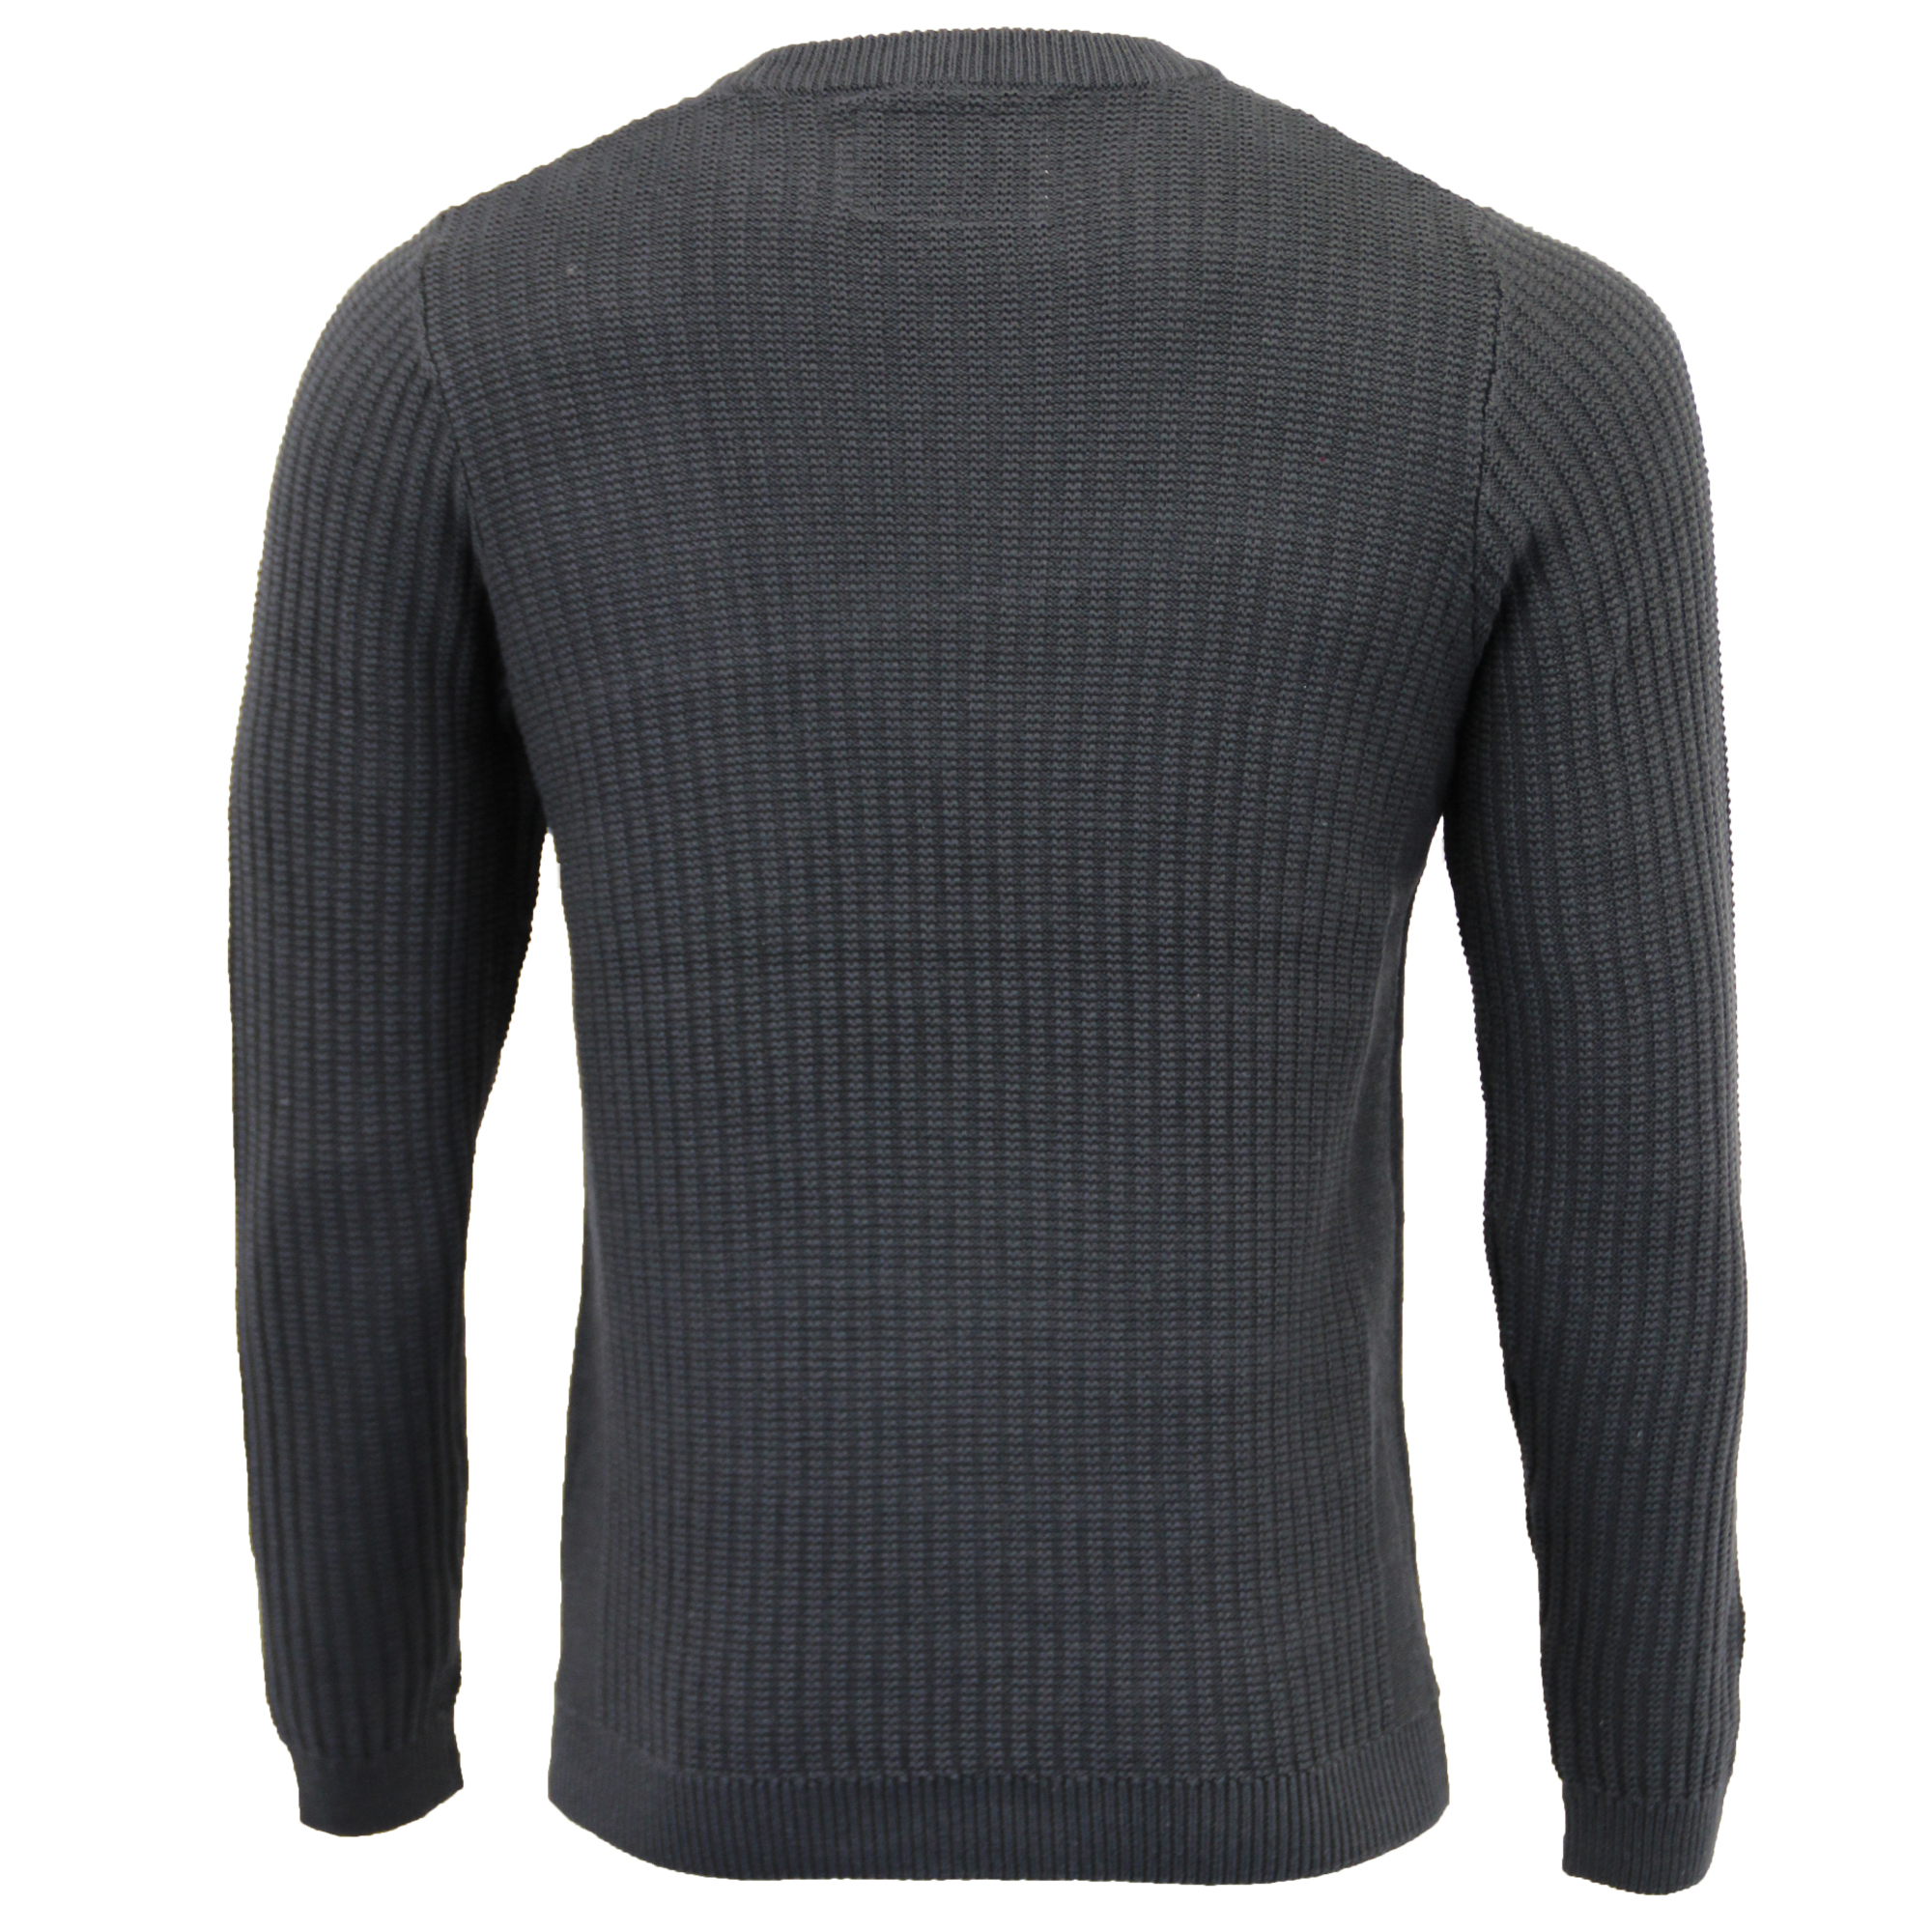 Mens-Knitted-Jumper-Tokyo-Laundry-Ribbed-Sweater-Pullover-Top-Crew-Neck-Winter thumbnail 3